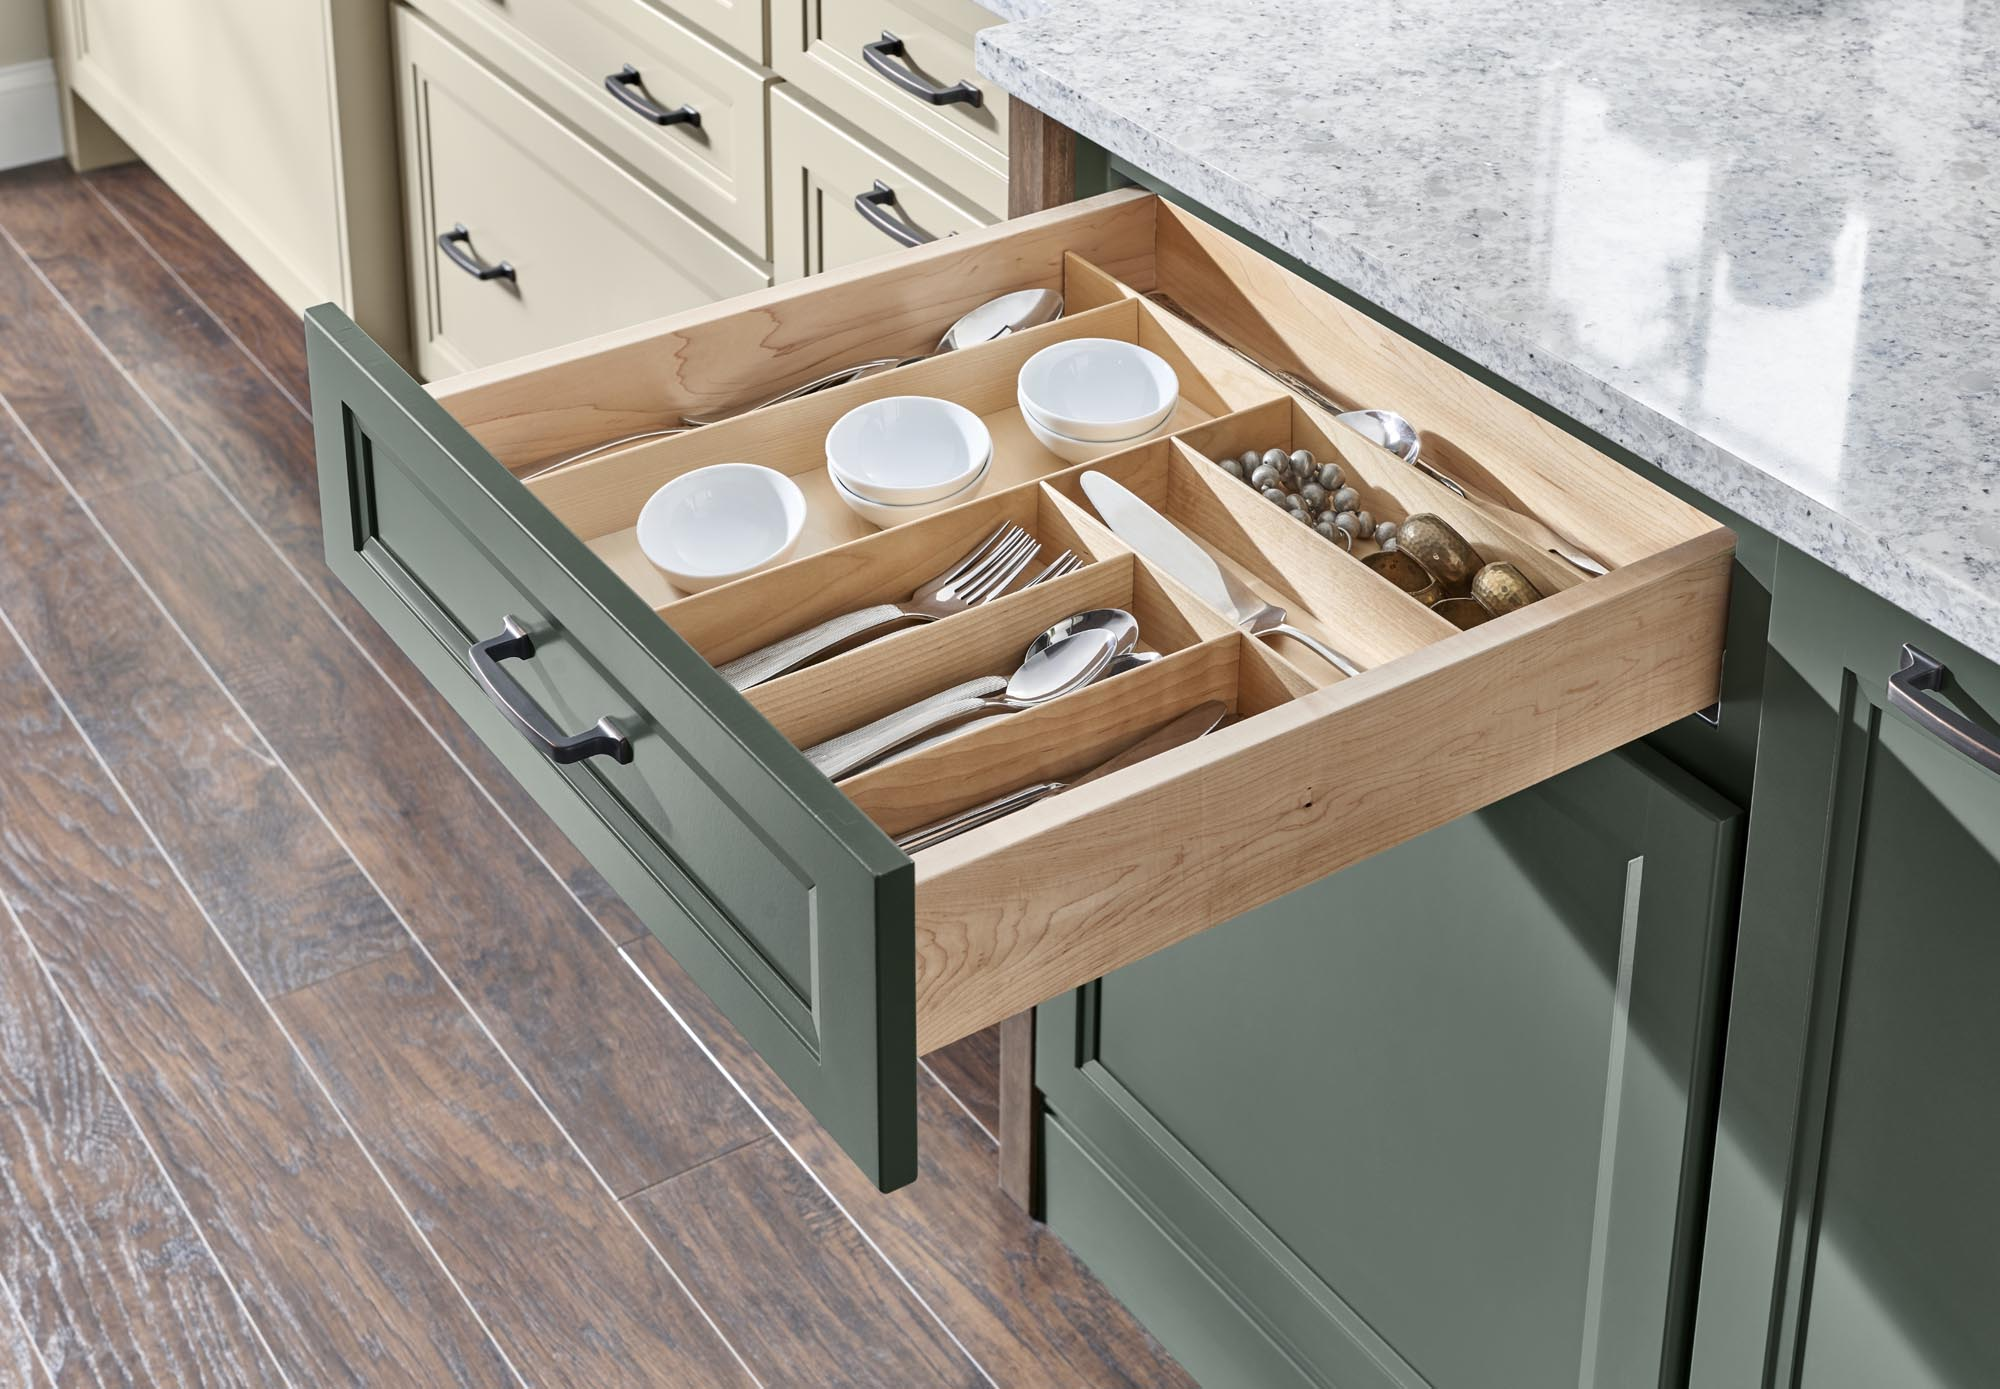 Drawer Organizer with Cutlery Divider Insert